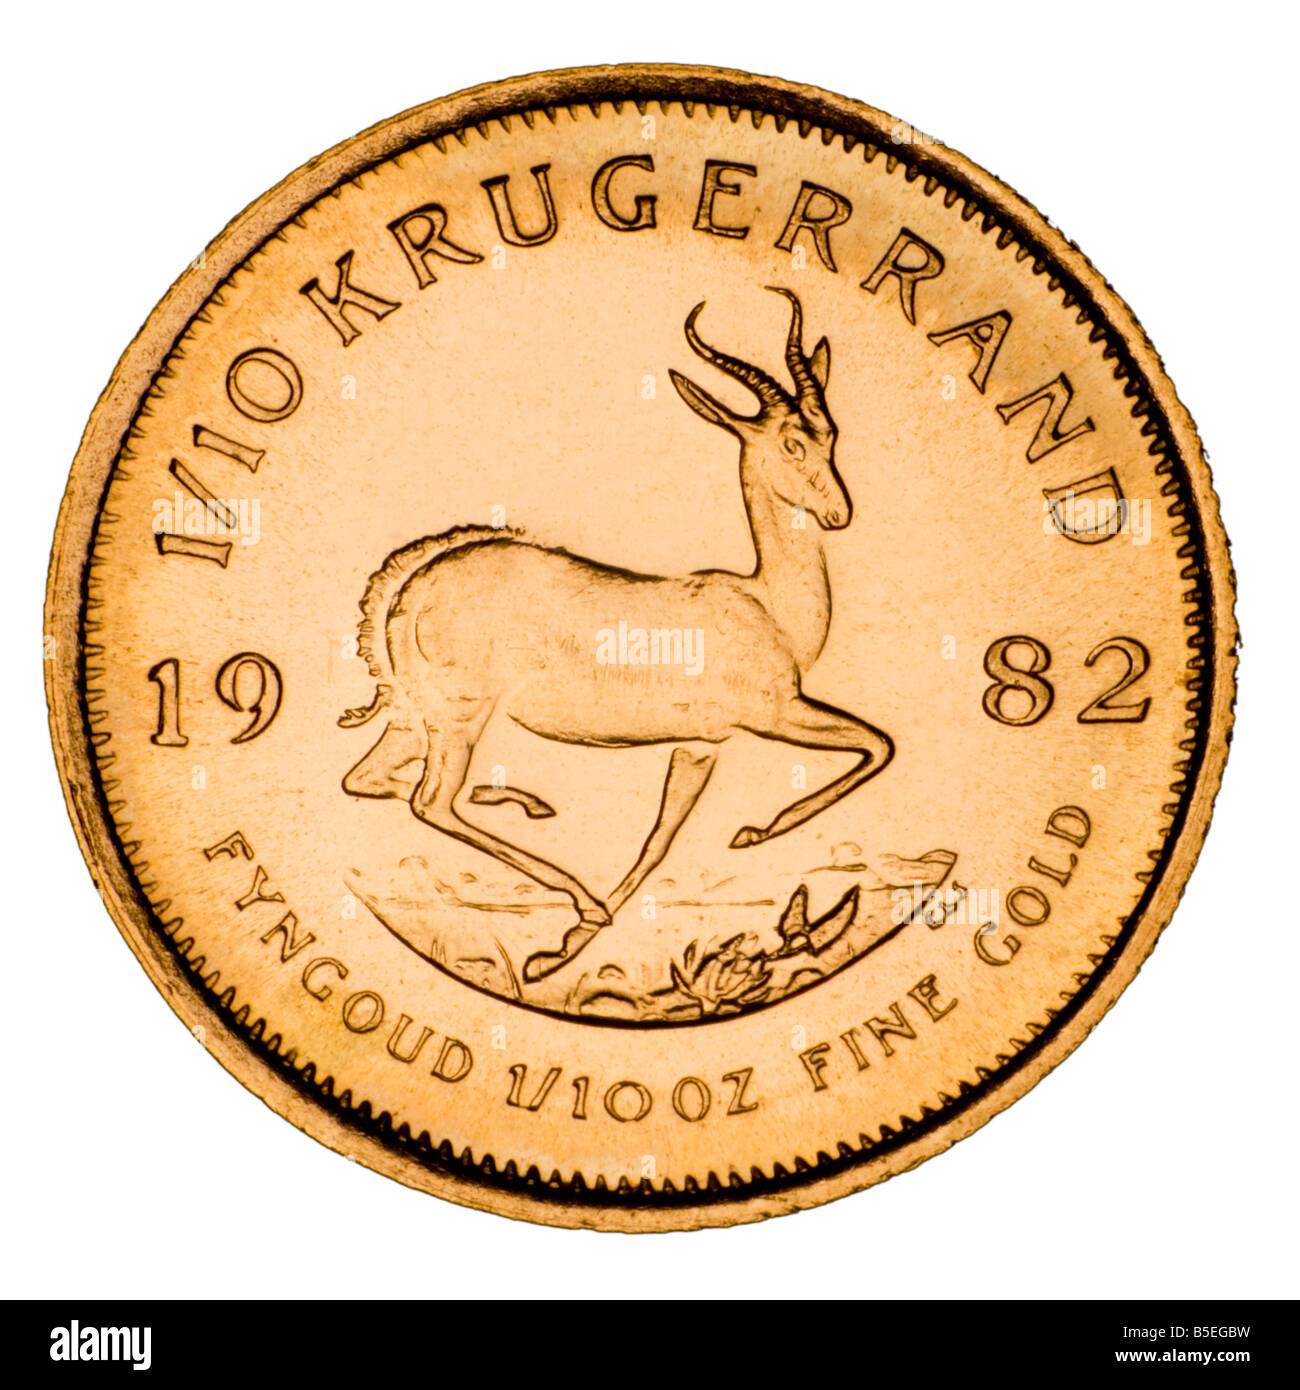 Gold 1/10th Krugerrand coin Reverse - Stock Image